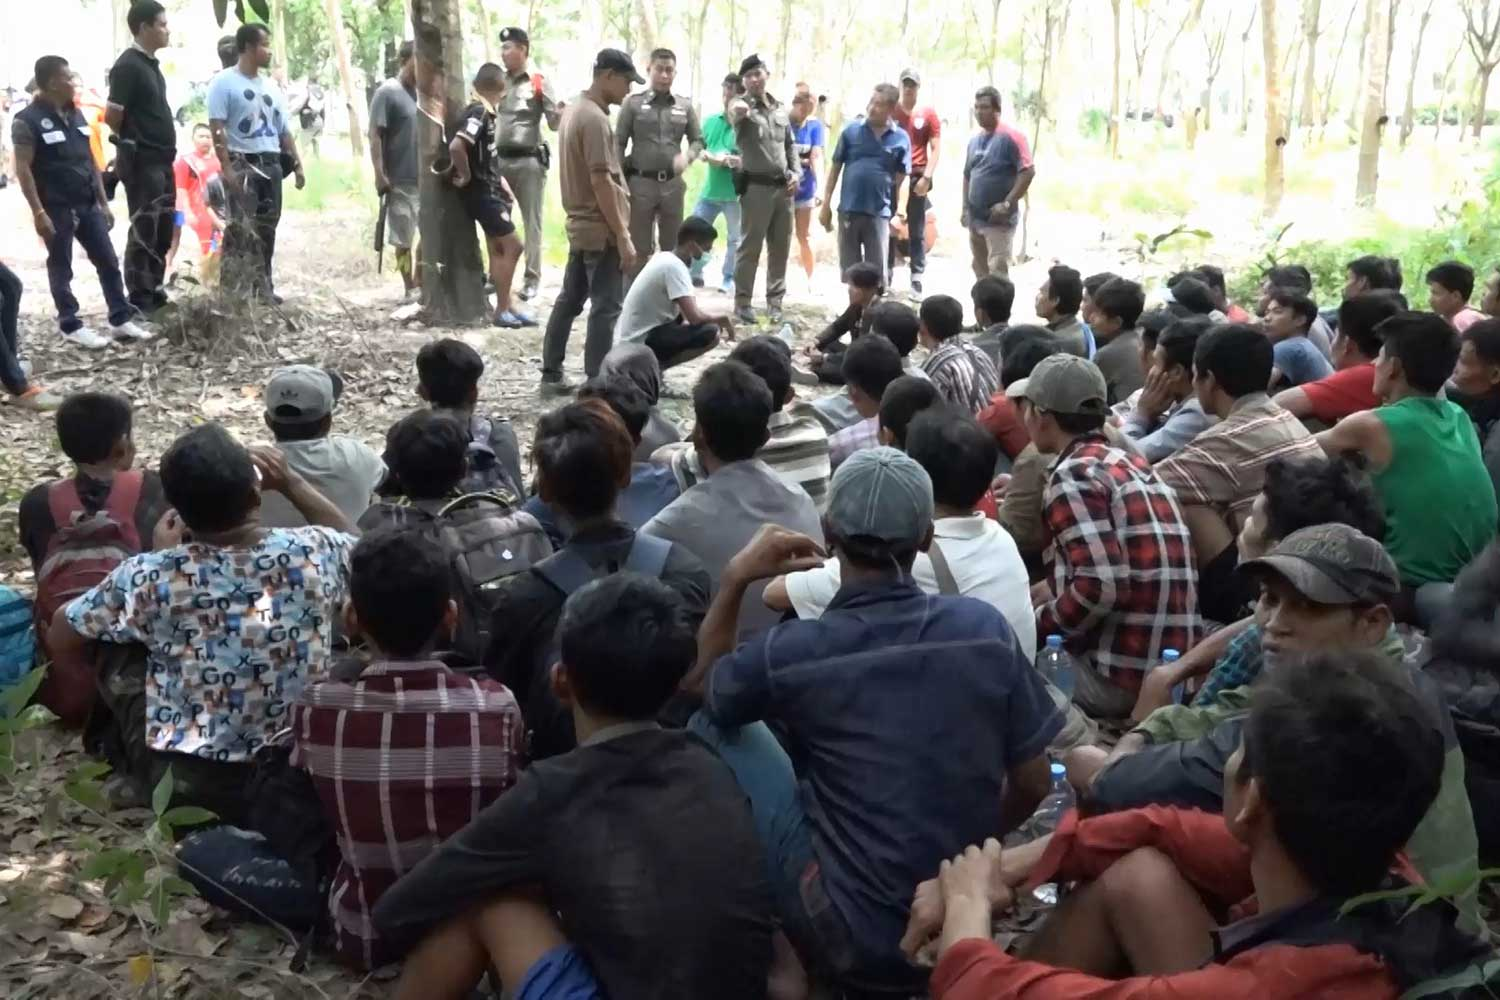 57 Malaysia-bound migrants arrested in Songkhla